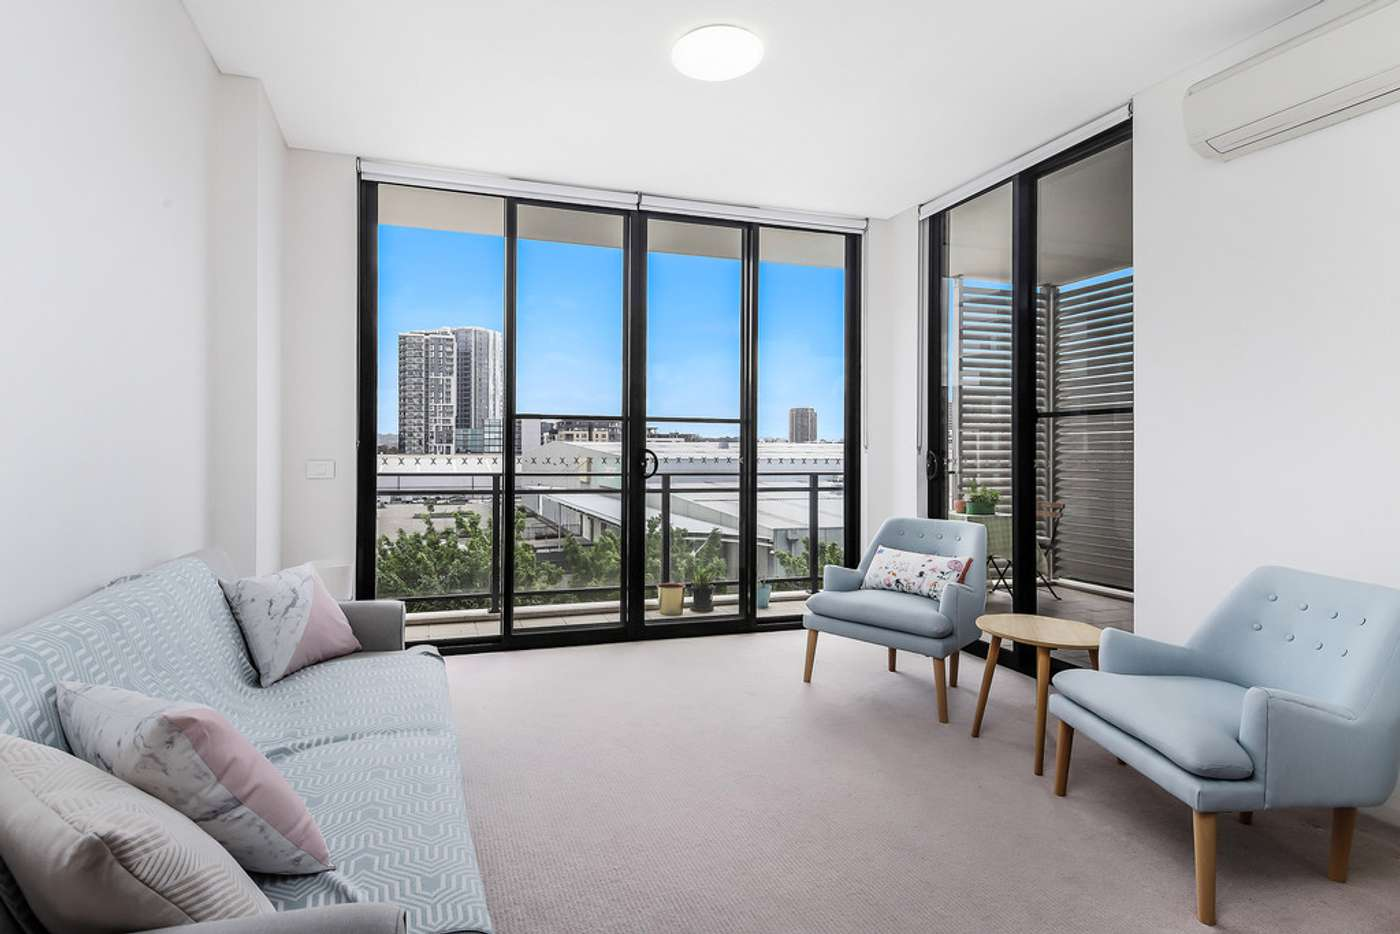 Main view of Homely apartment listing, 427/22 Baywater Drive, Wentworth Point NSW 2127